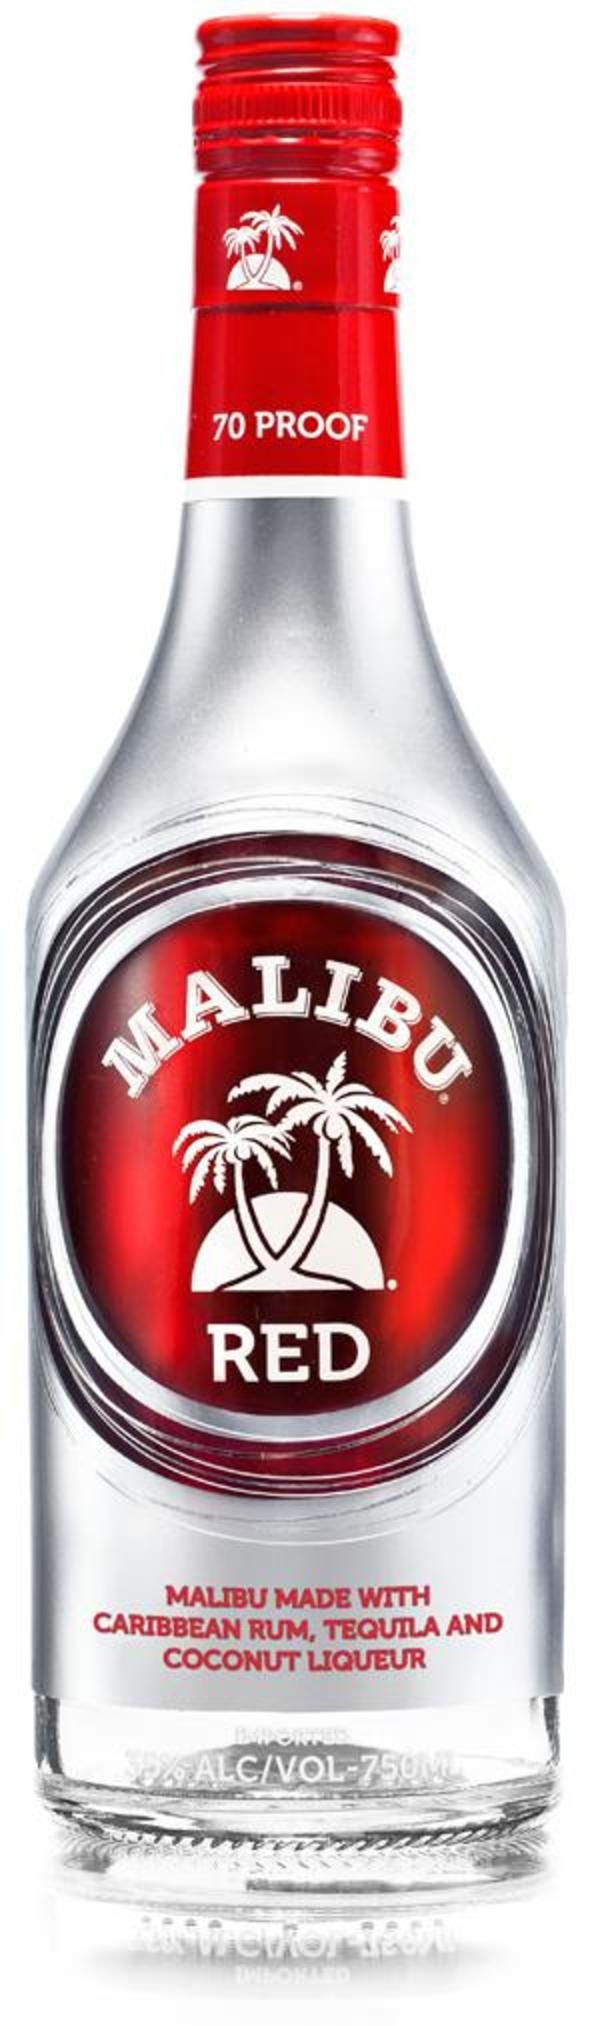 Spring break cocktails with Malibu Red